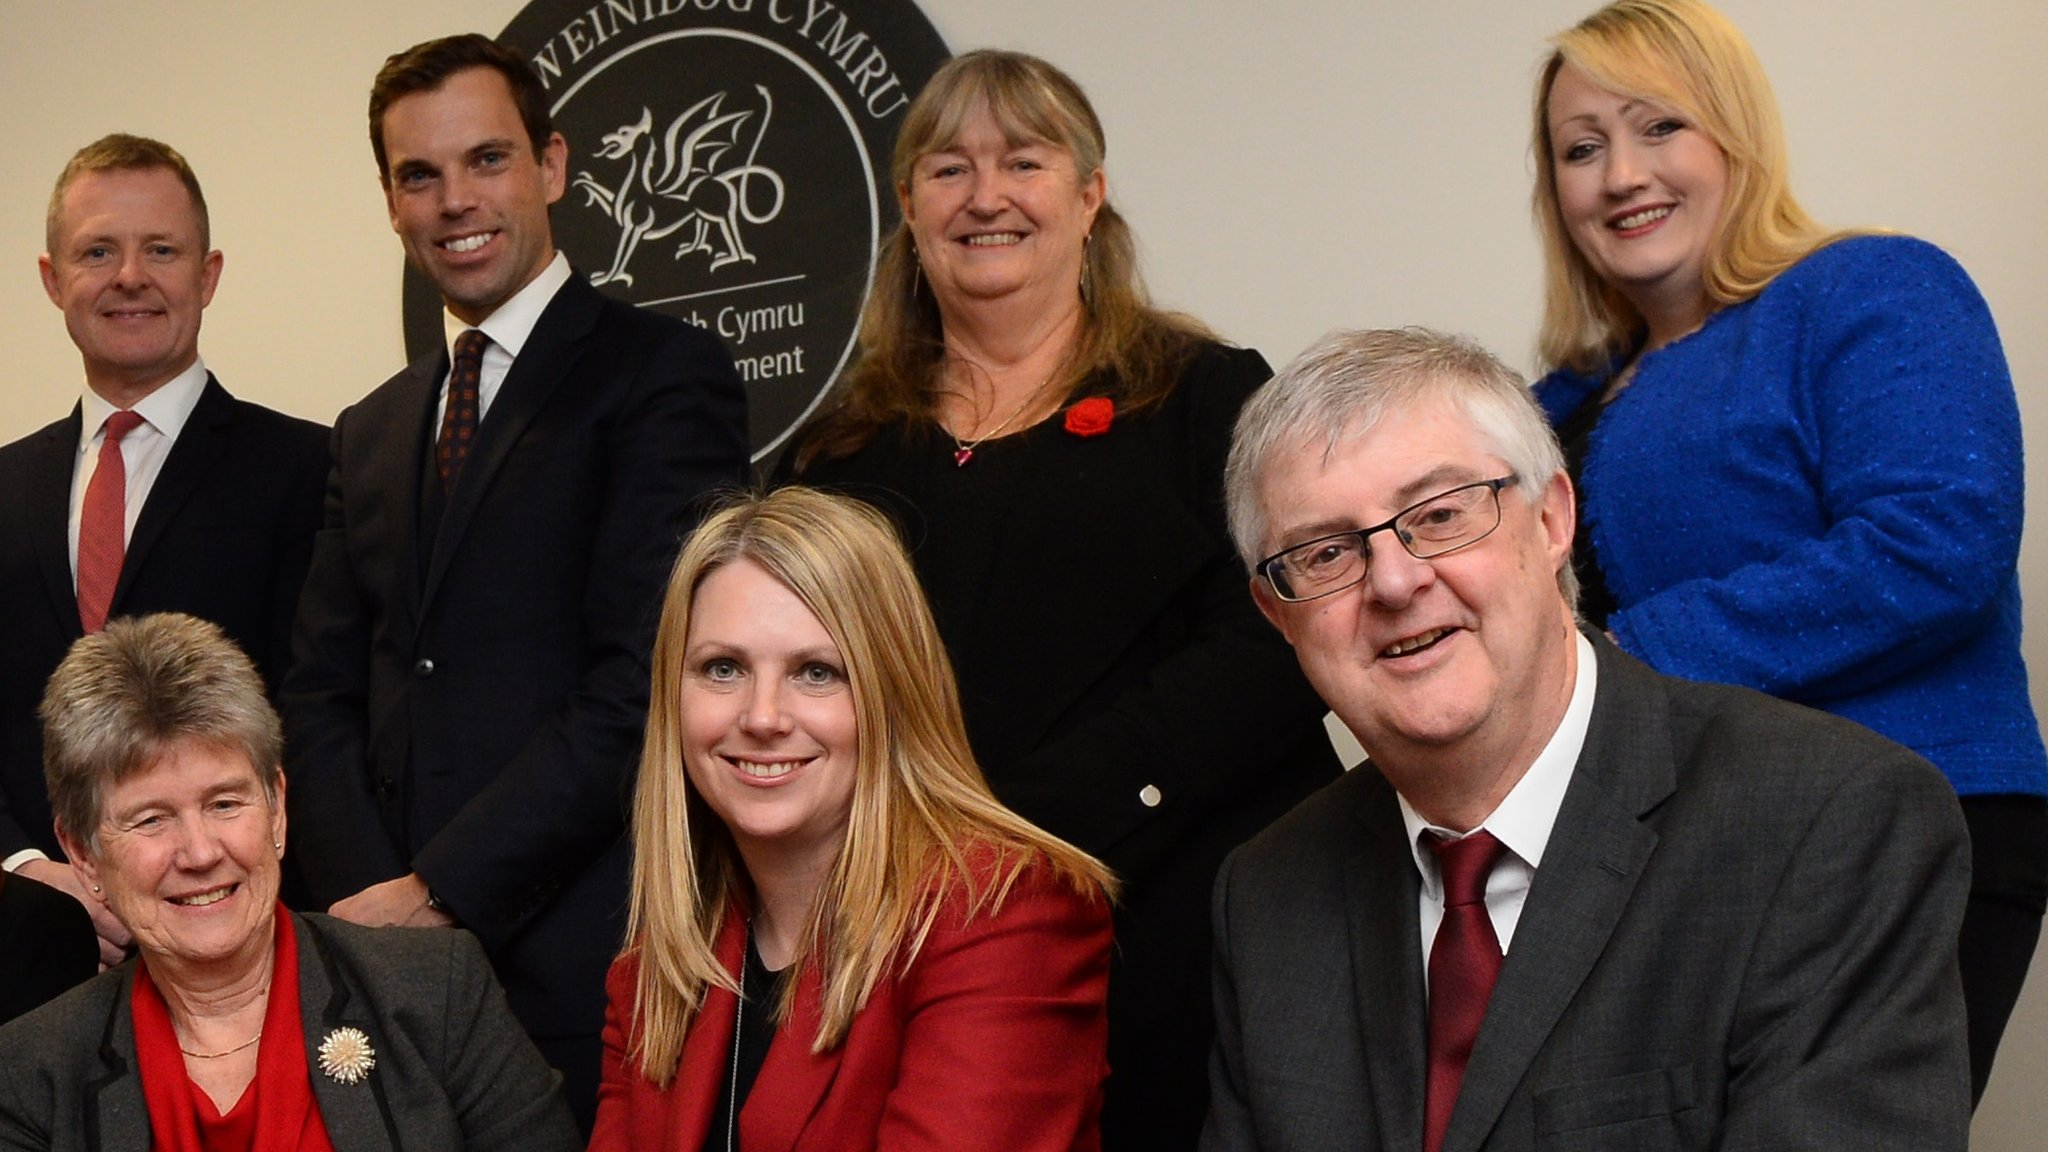 Wales first minister appoints his top team